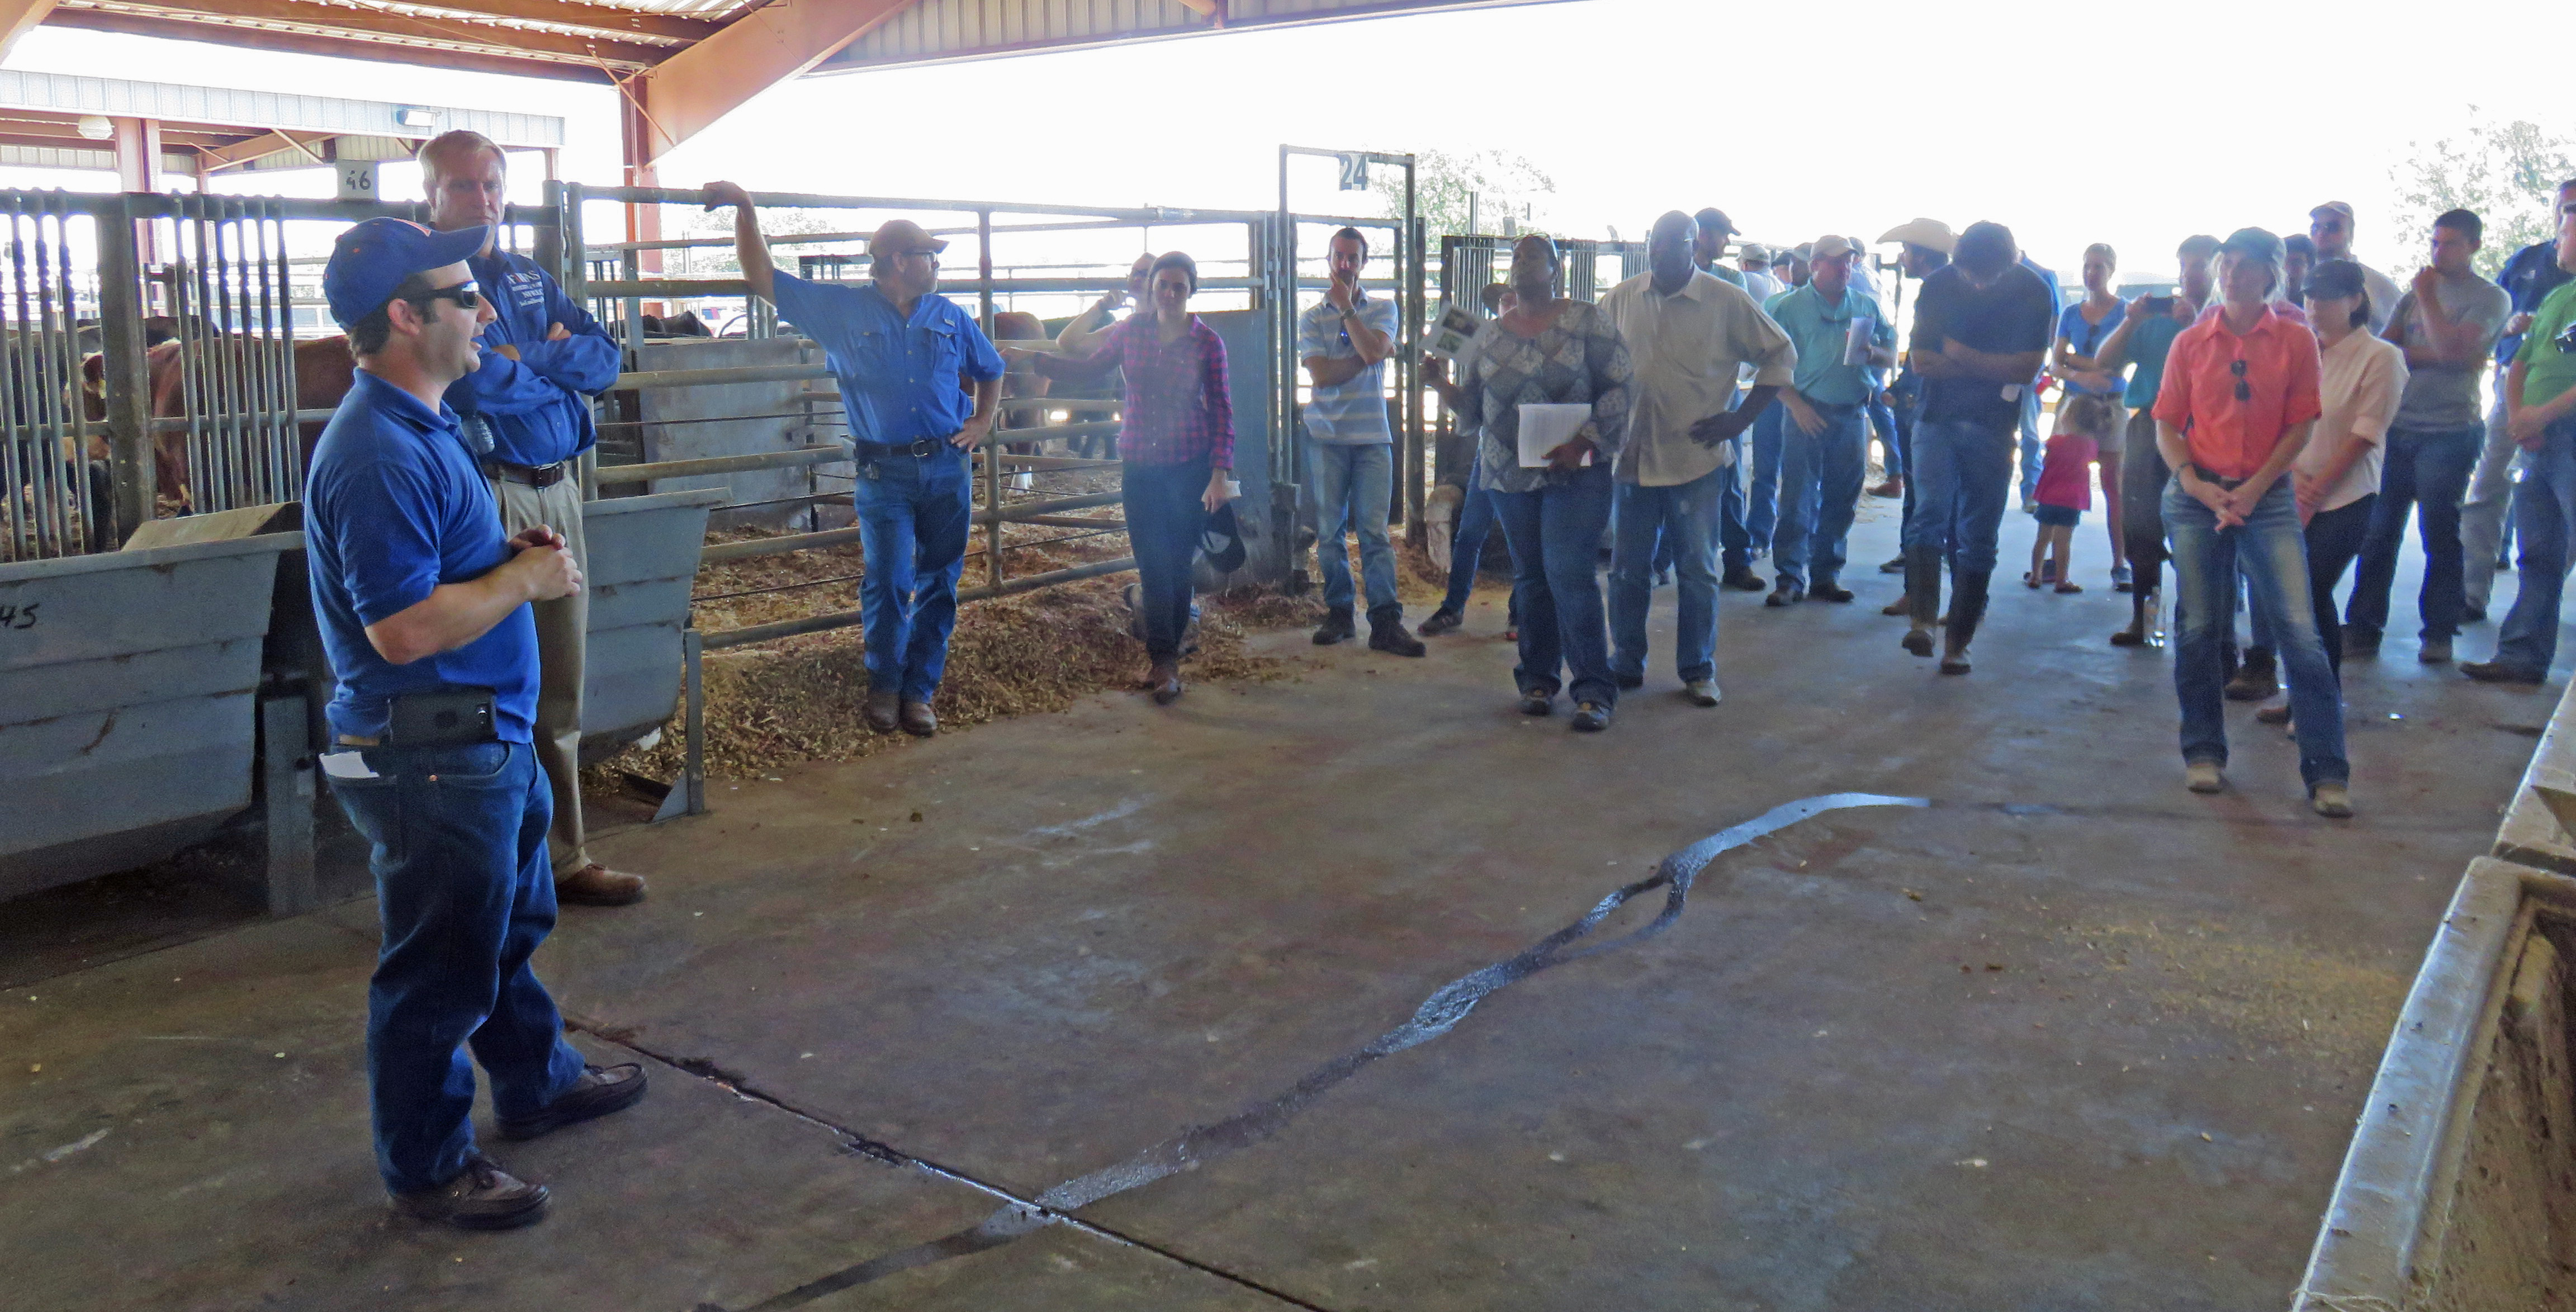 Nicoals DiLorenzo and Cliff Lamb shared how they use the Feed Efficiency Facility at the Beef Unit to evaluate the Florida Bull Test Bulls as well as new feed additives to identify cattle that perform well on less feed. Photo Credit Doug Mayo.